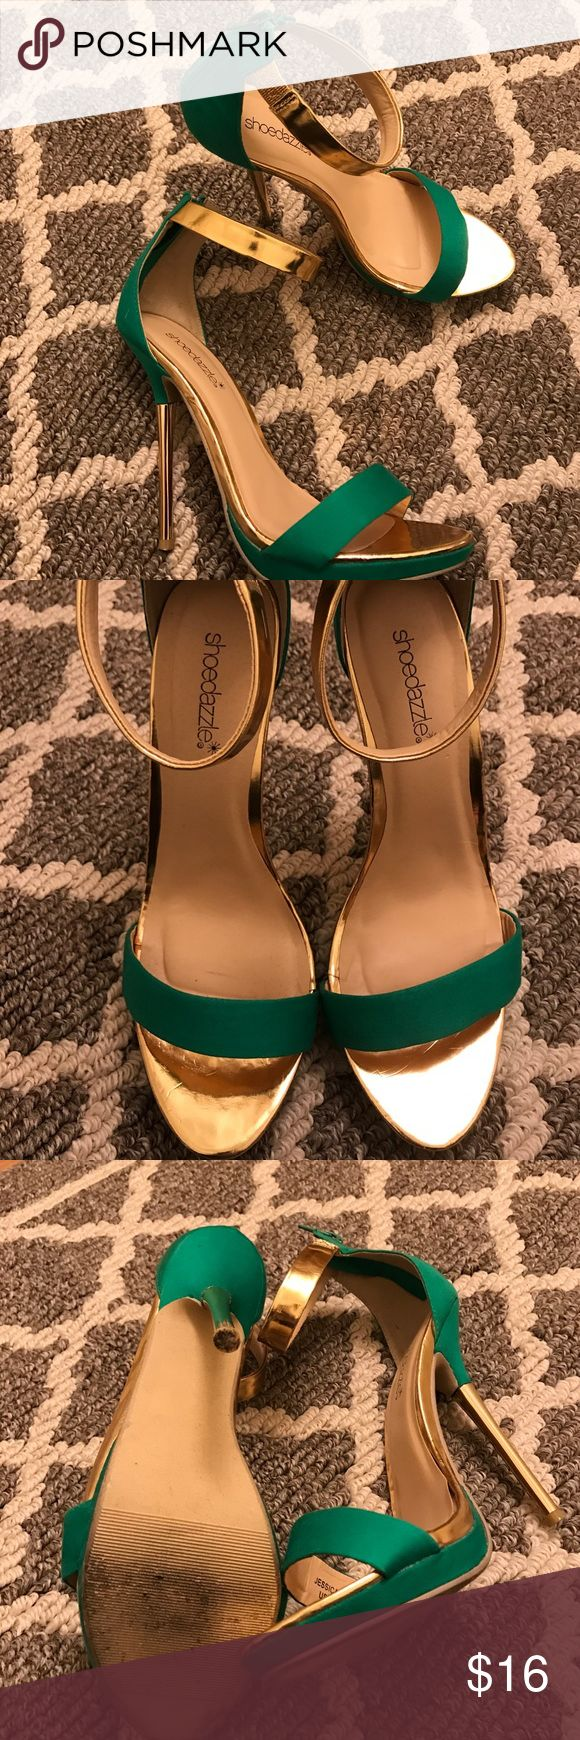 Shoedazzle Jessica Sandals Worn once for a wedding. Metallic gold and green with zipper on the back shoedazzle  Shoes Heels